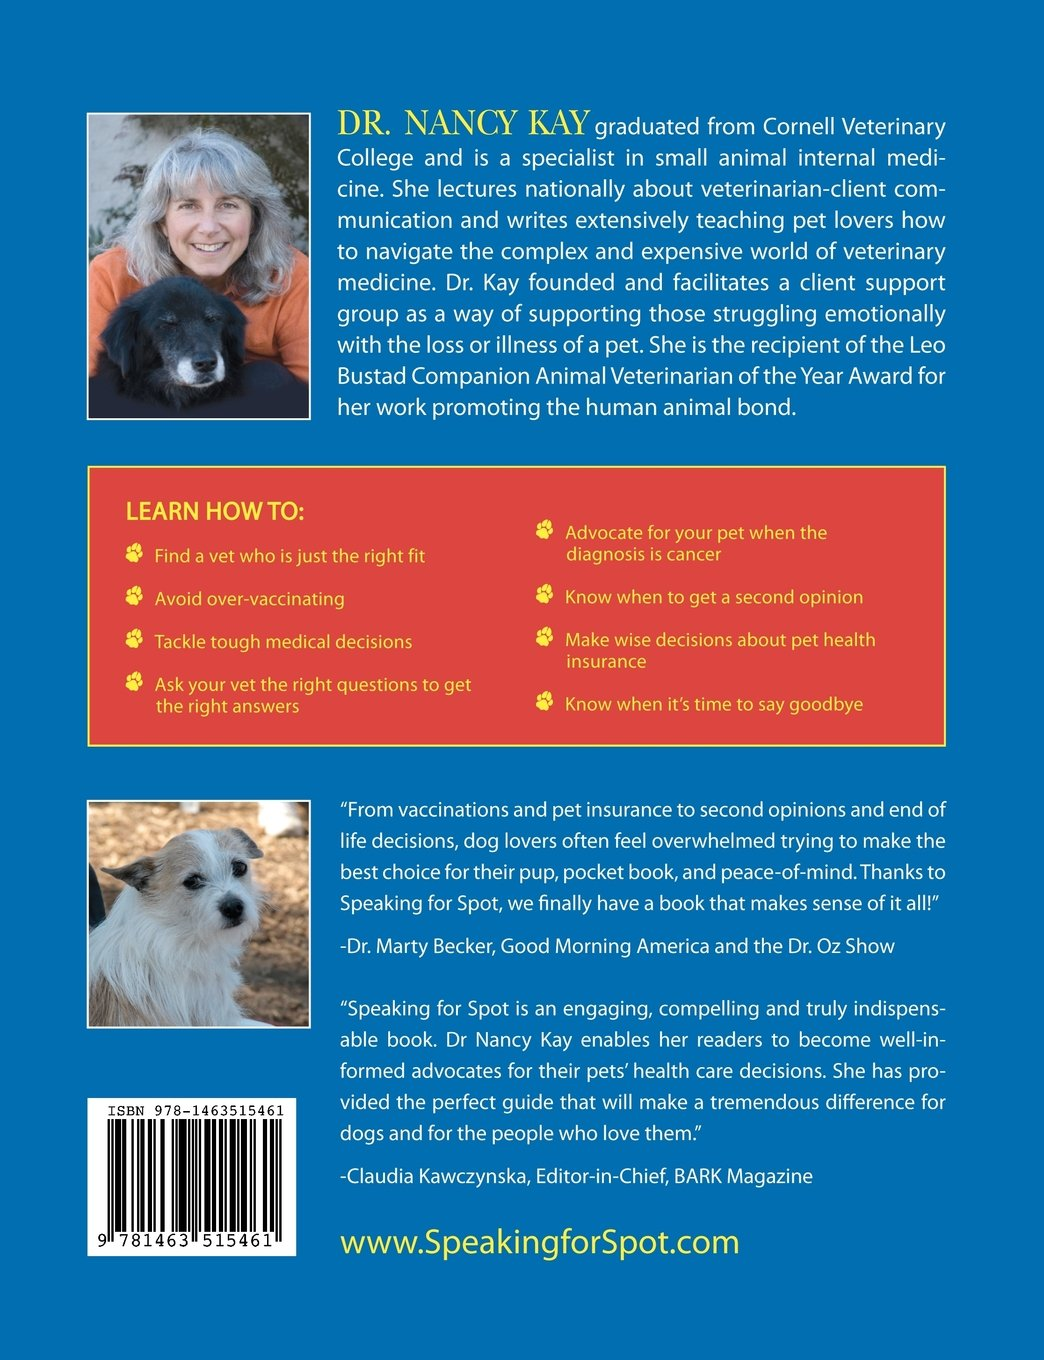 Speaking for Spot: Be the Advocate Your Dog Needs to Live a Happy